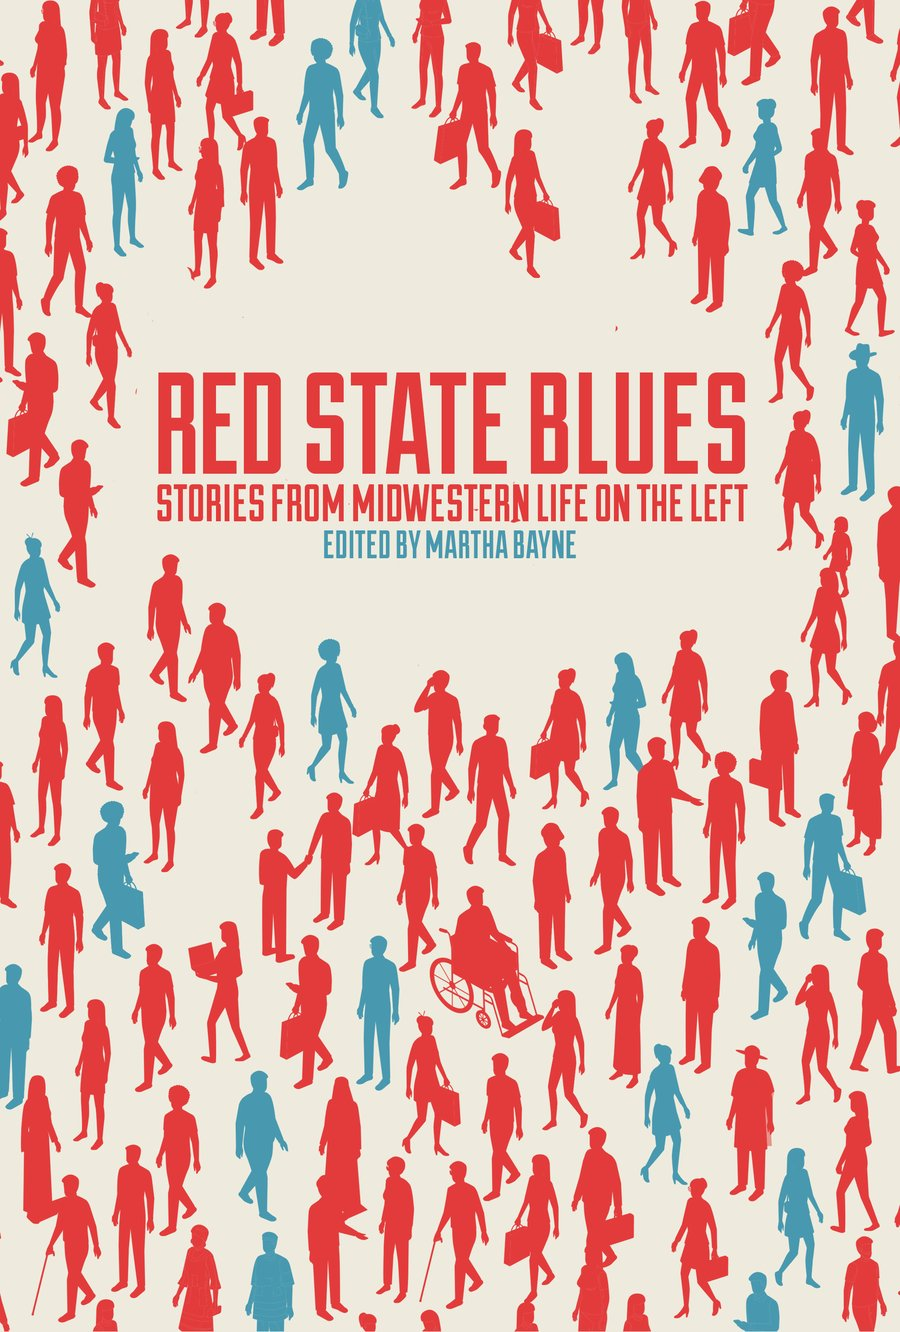 Red State Blues, Stories from Midwestern Life on the Left